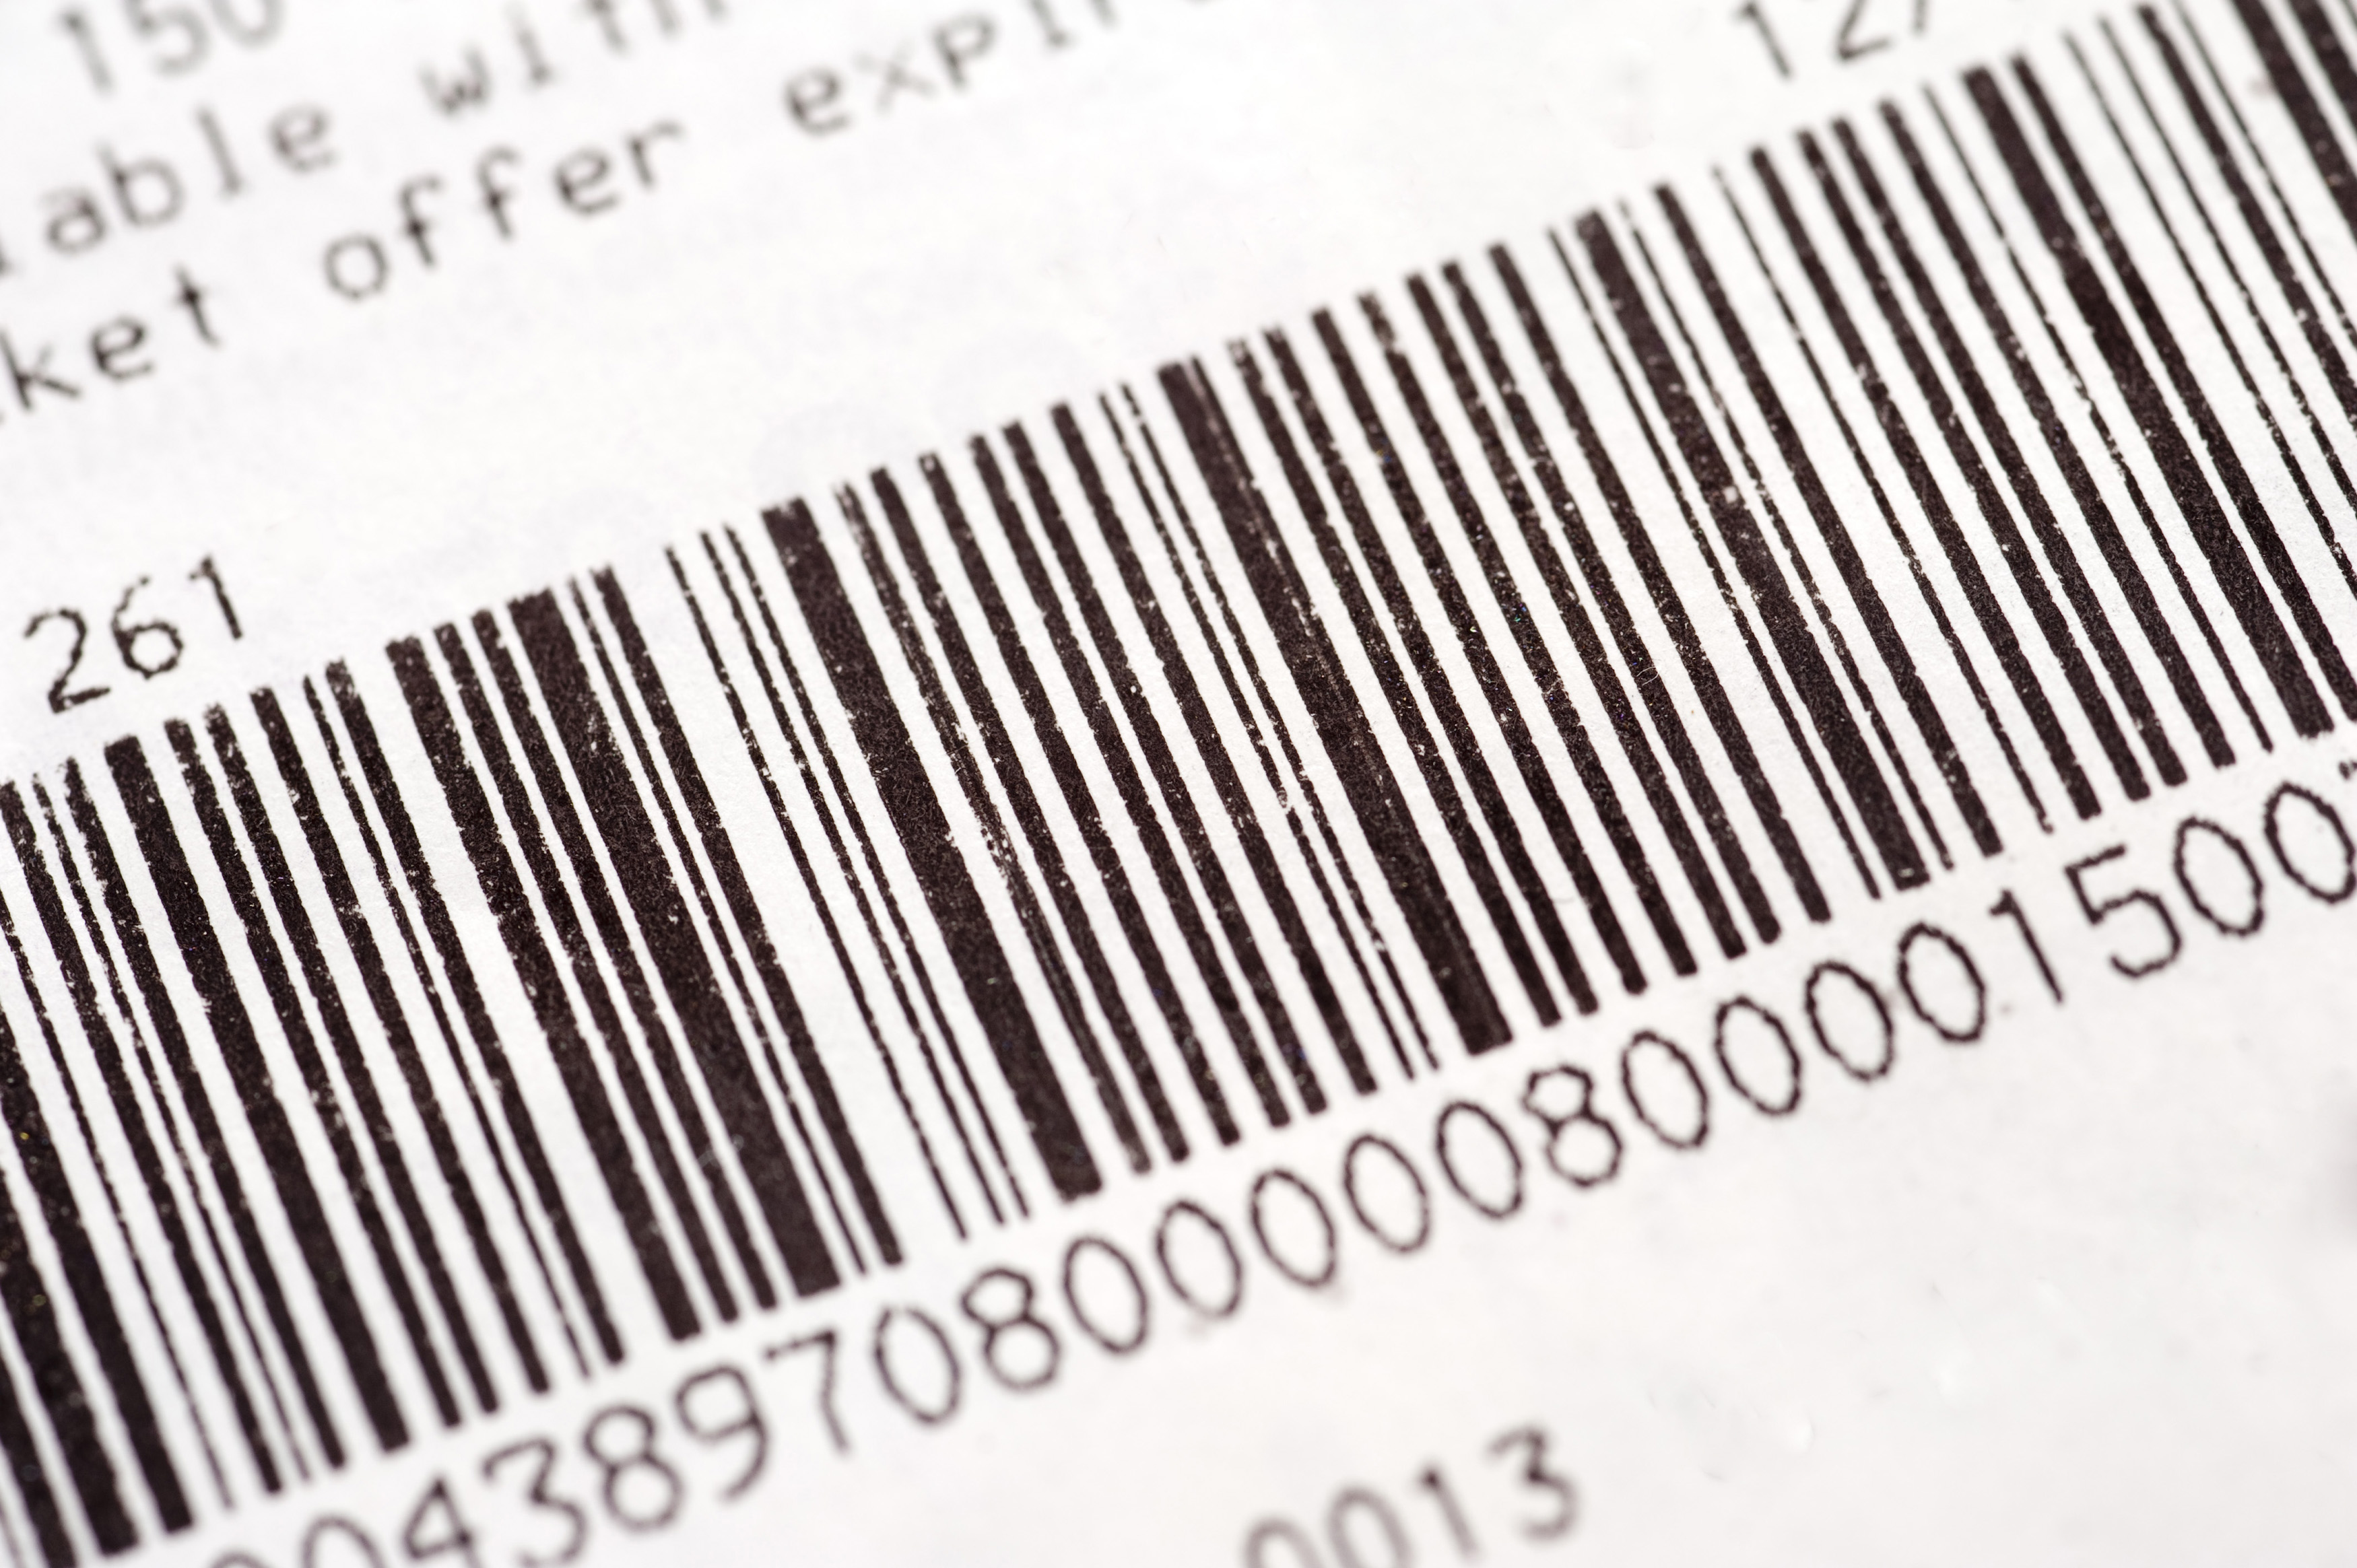 Barcode on a stock item or inventory identifying the description and price by means of bars representing numbers that can be read by a laser scanner